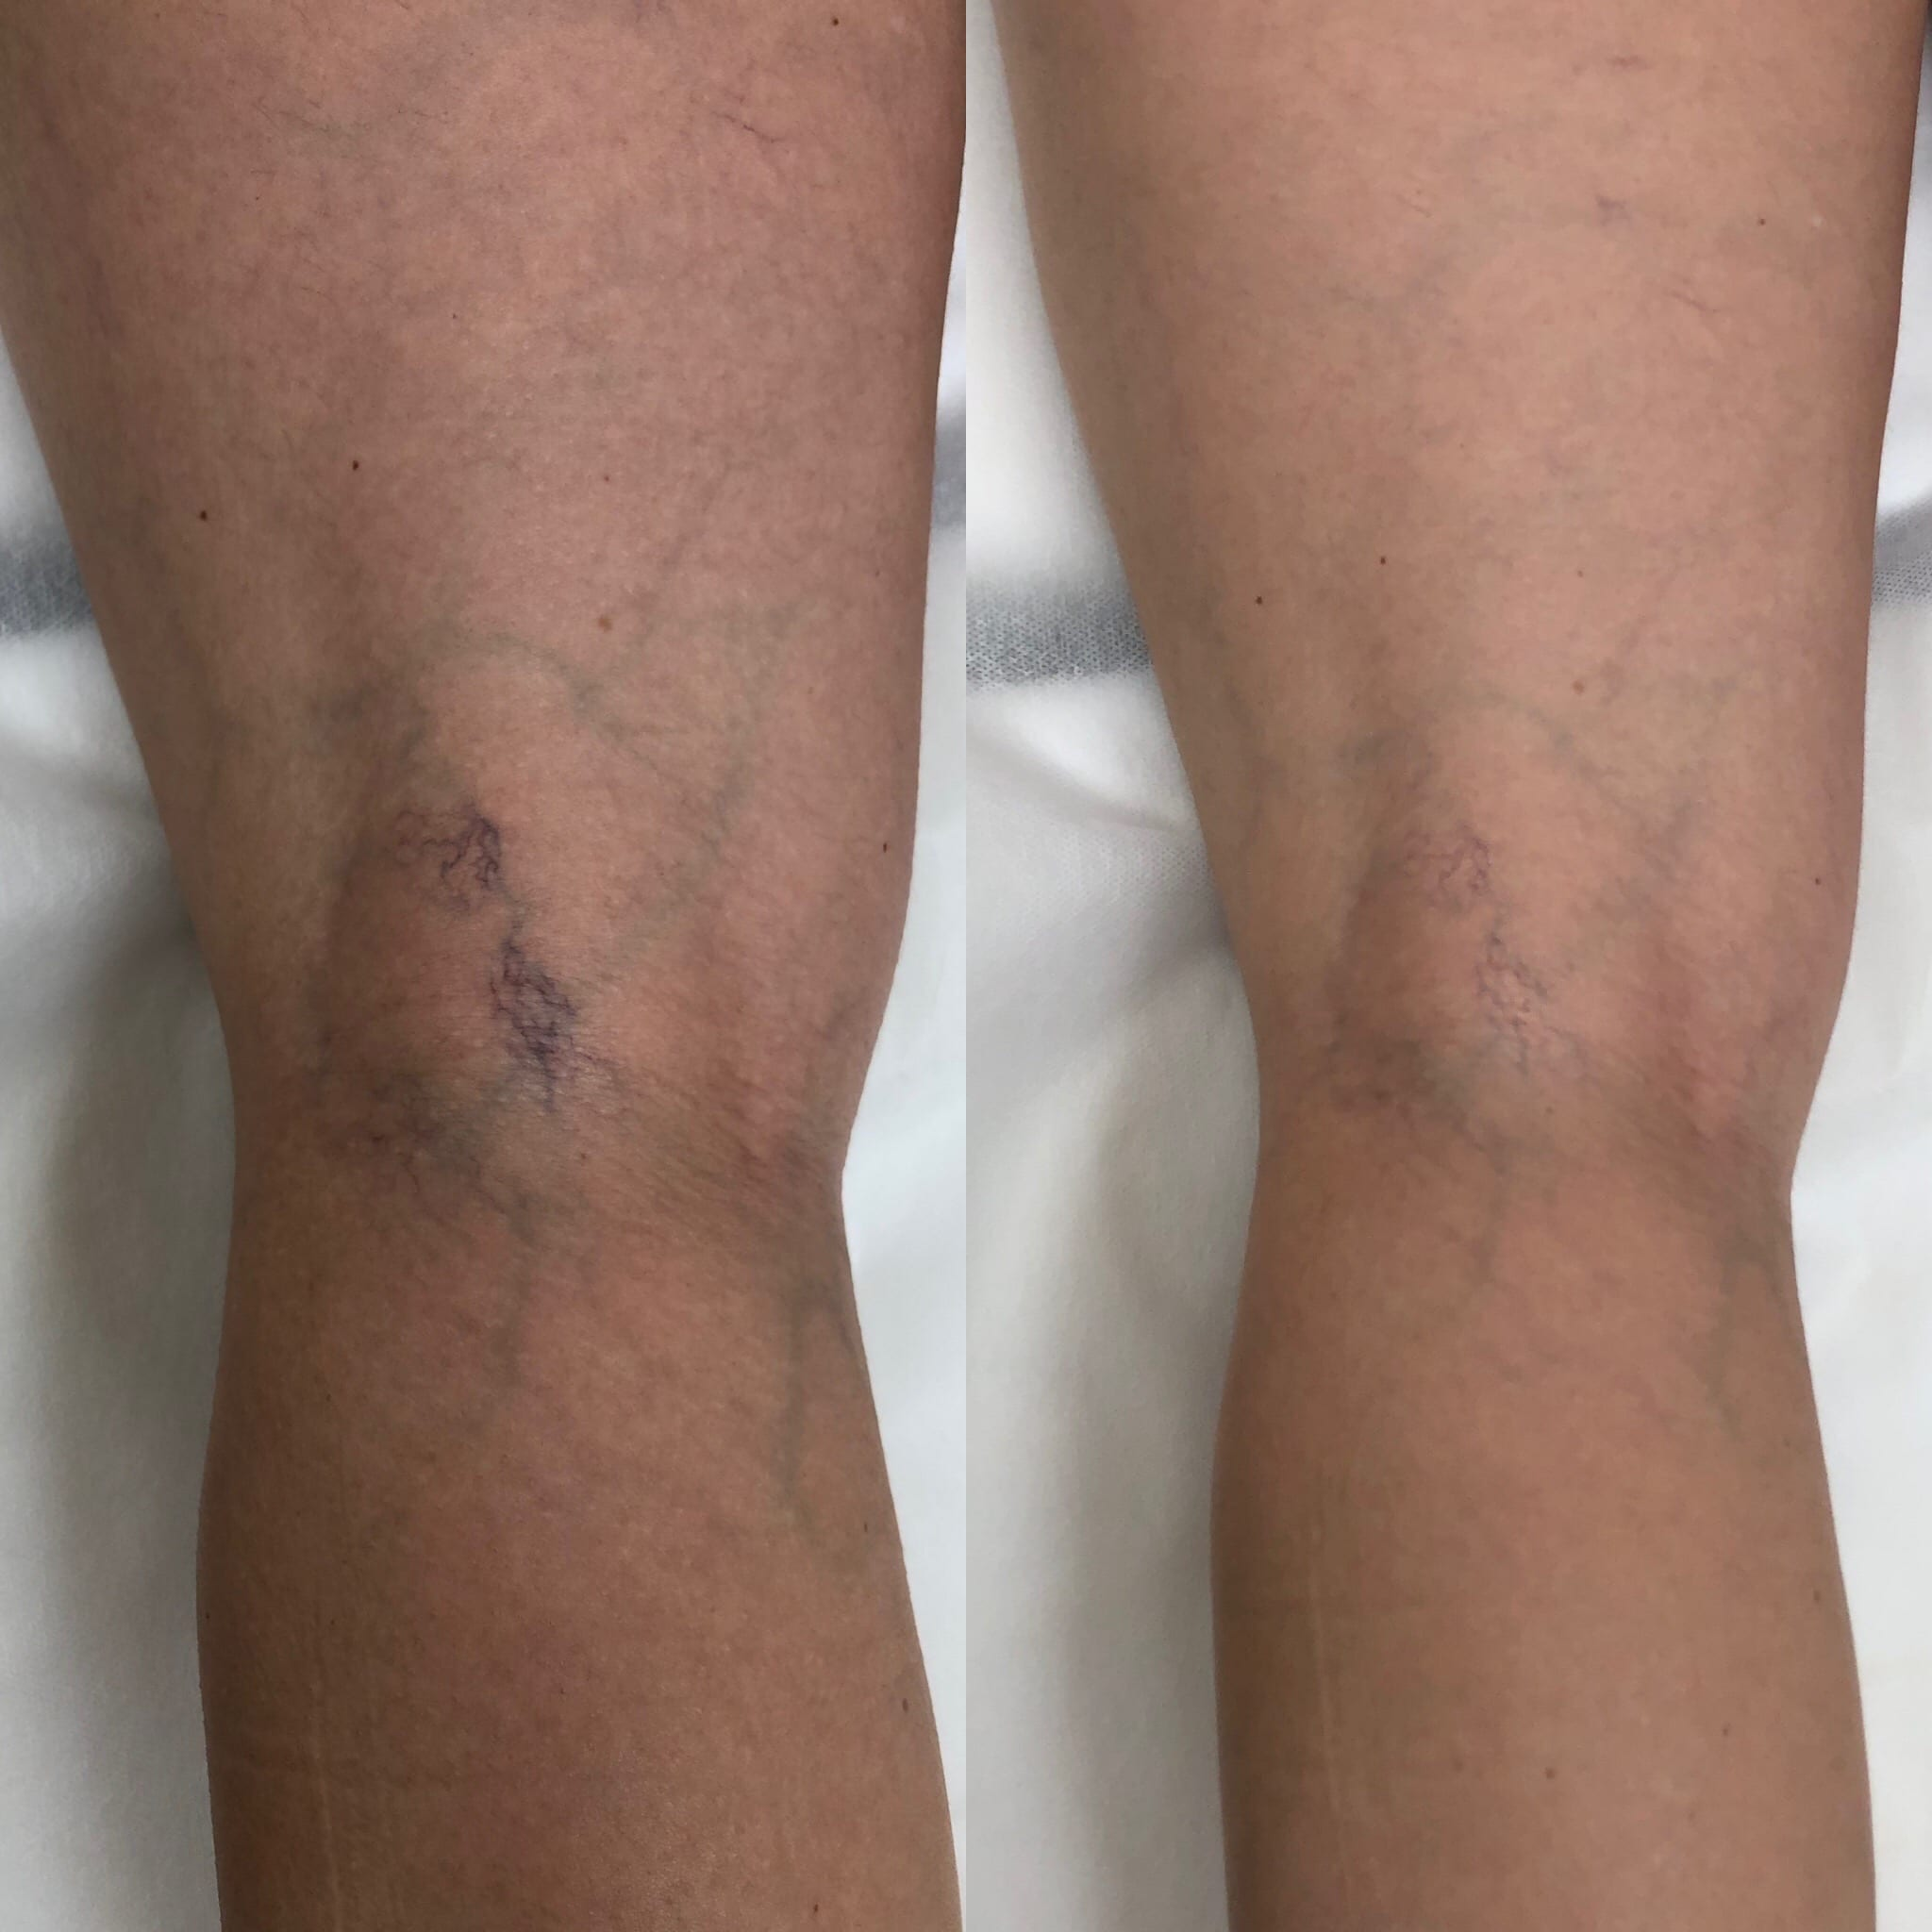 38 y/o Caucasian F after 3 treatments of sclerotherapy to the posterior knee.